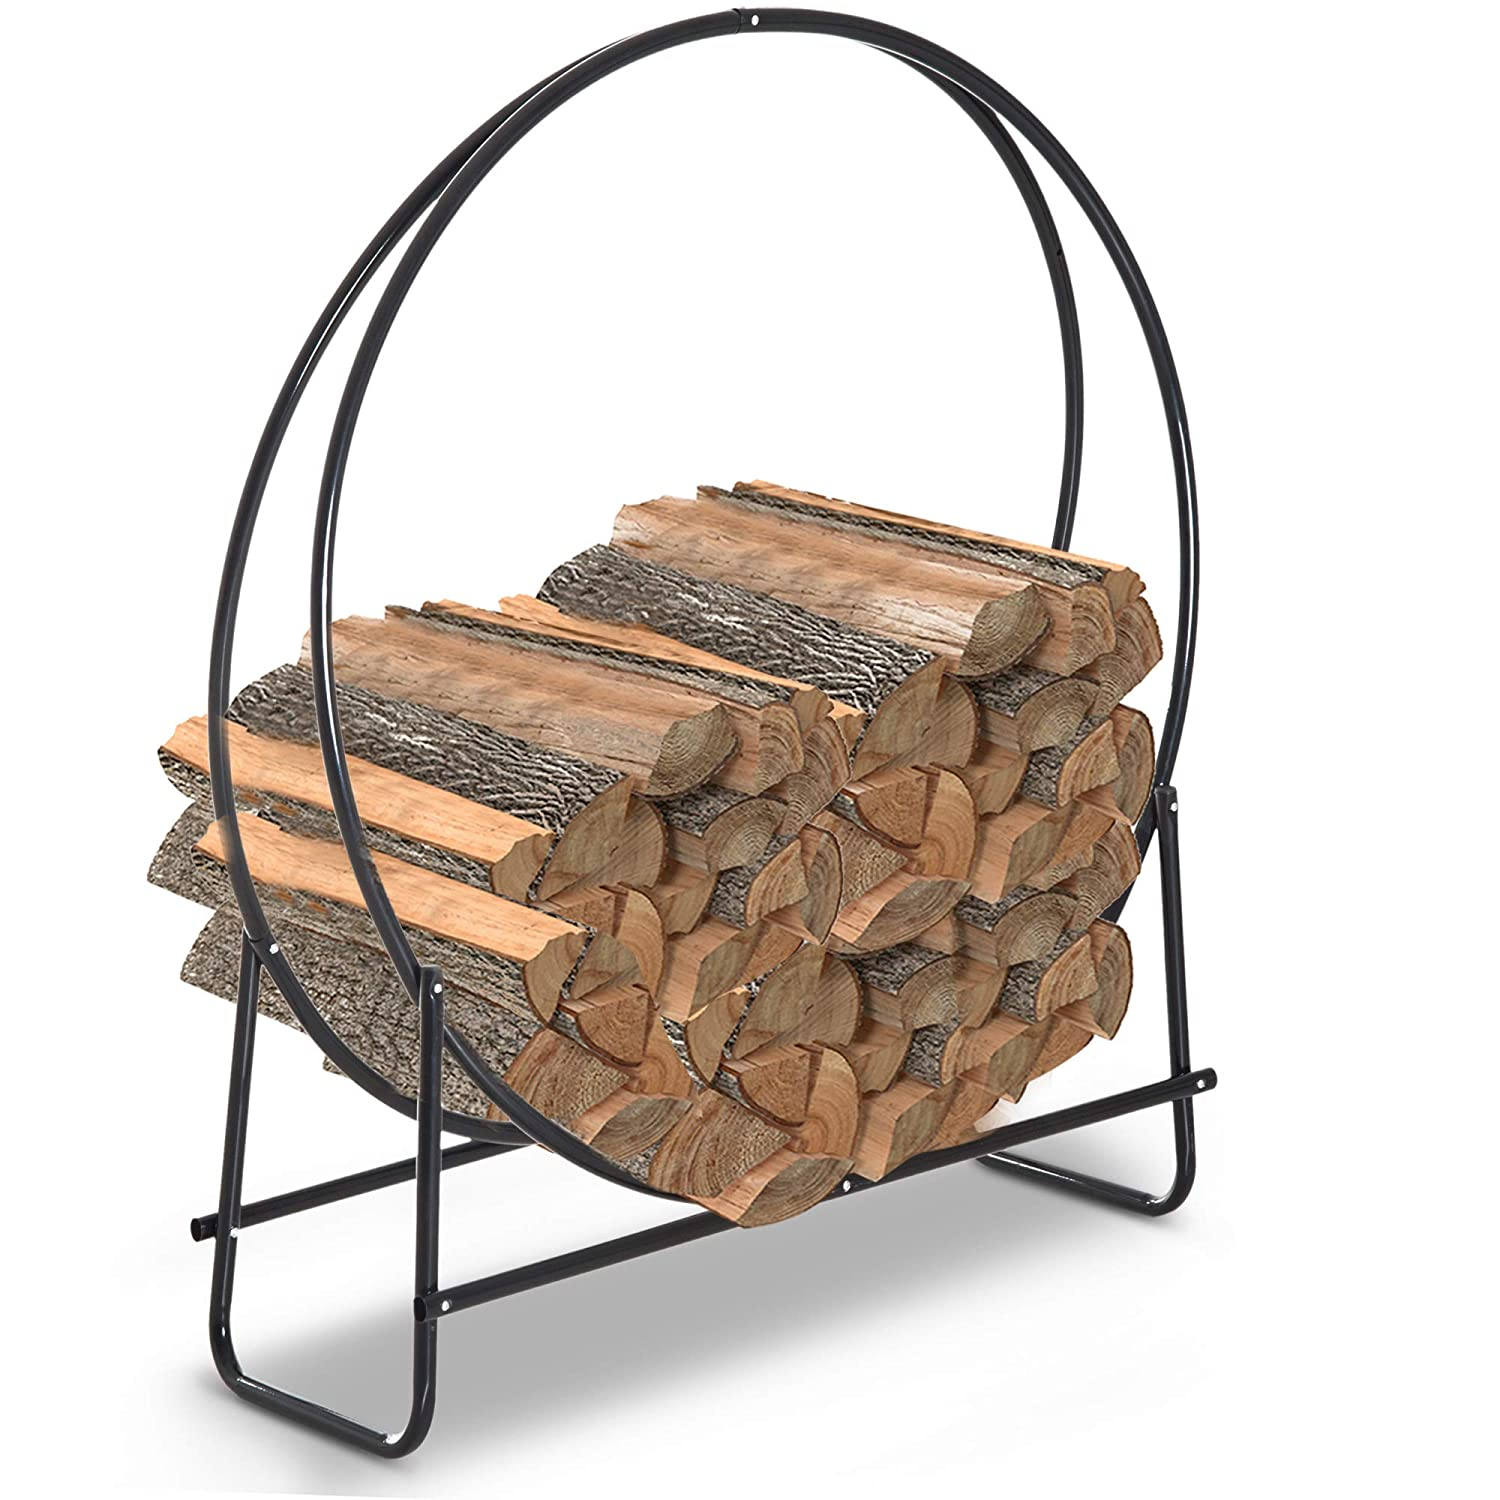 HOMCOM Firewood Log Rack Steel Storage Stand Holder Solid Hoop Black Outdoor and Indoor 102 x 40 x 114 cm Sold by MHSTAR